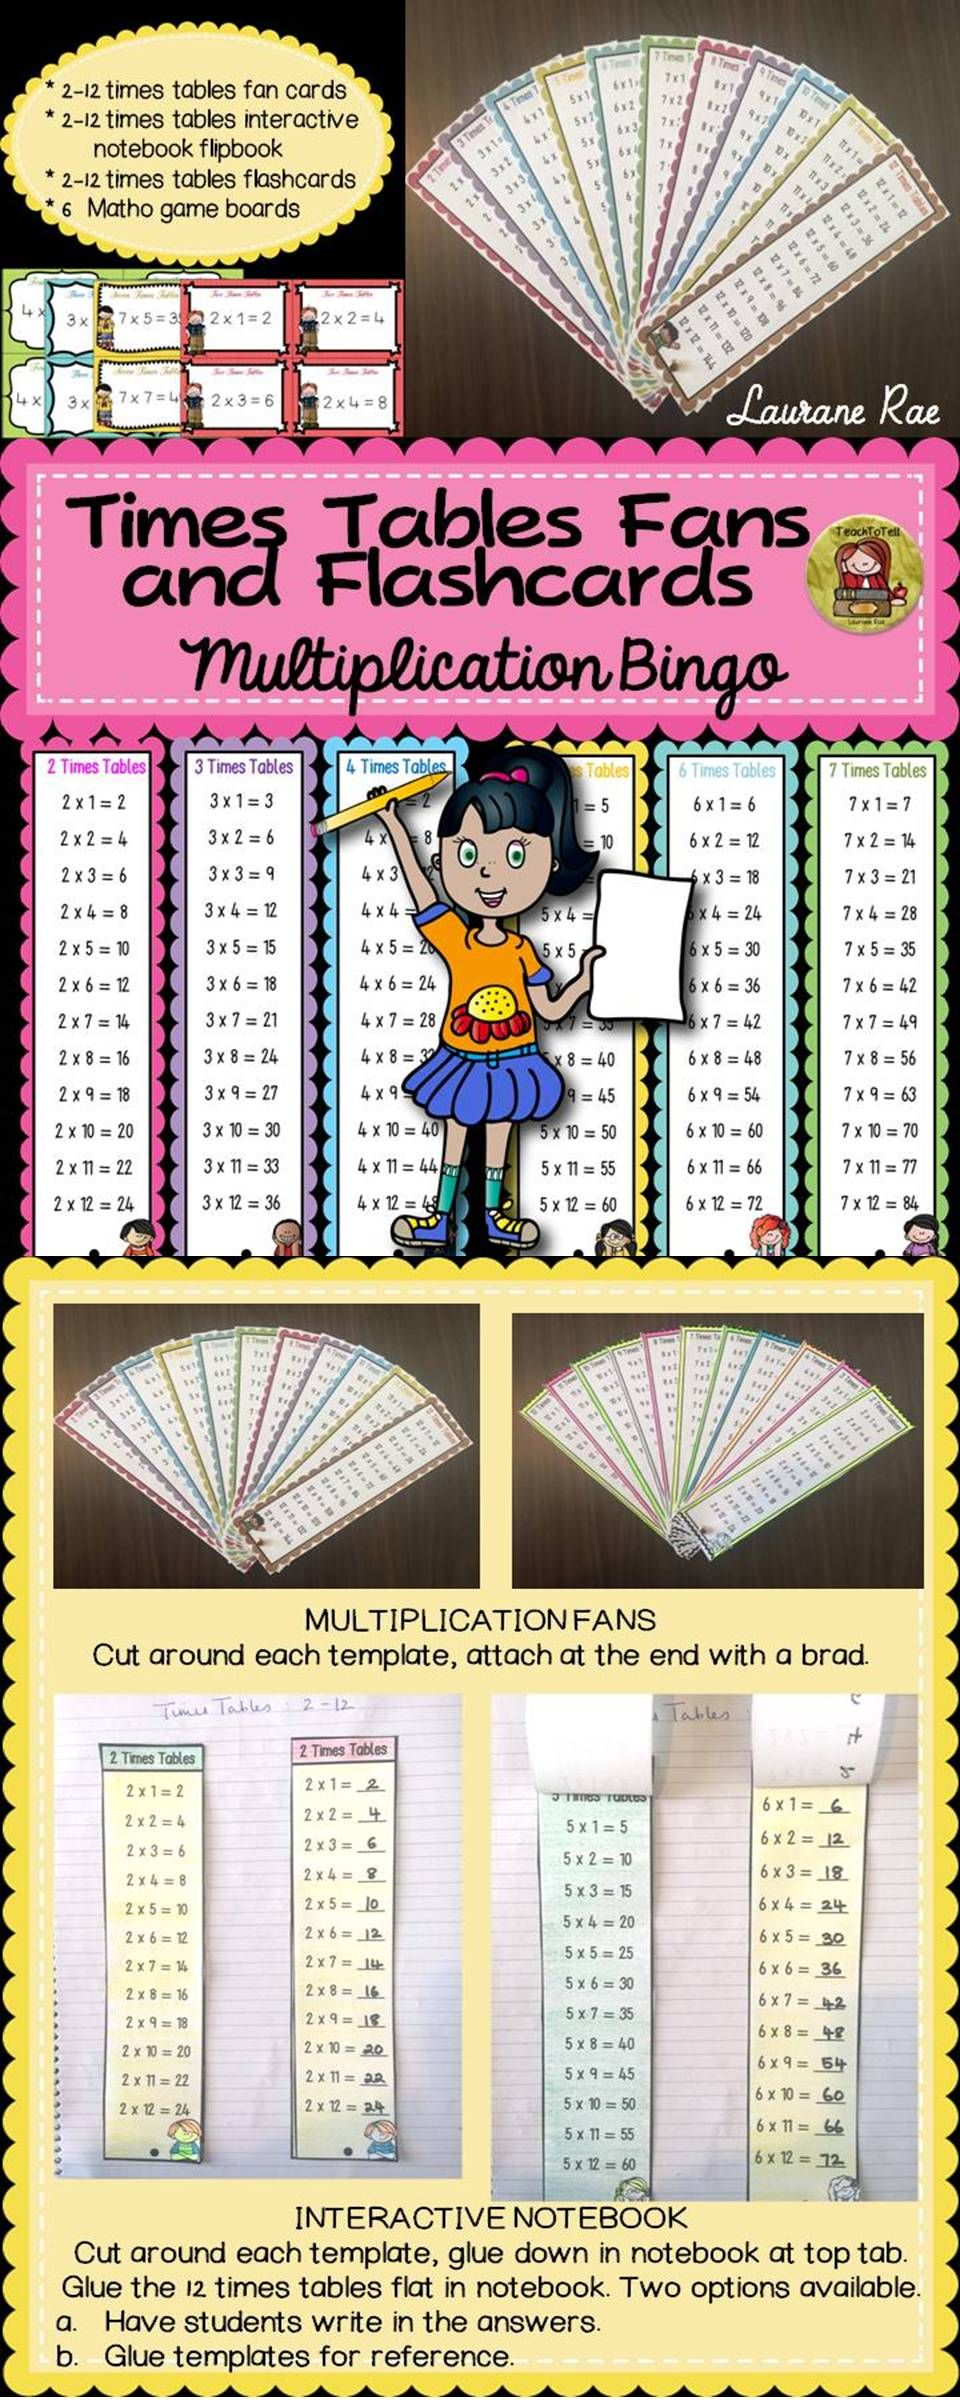 Multiplication times tables fans interactive notebook multiplication times tables fans interactive notebook flashcards bingo nvjuhfo Choice Image